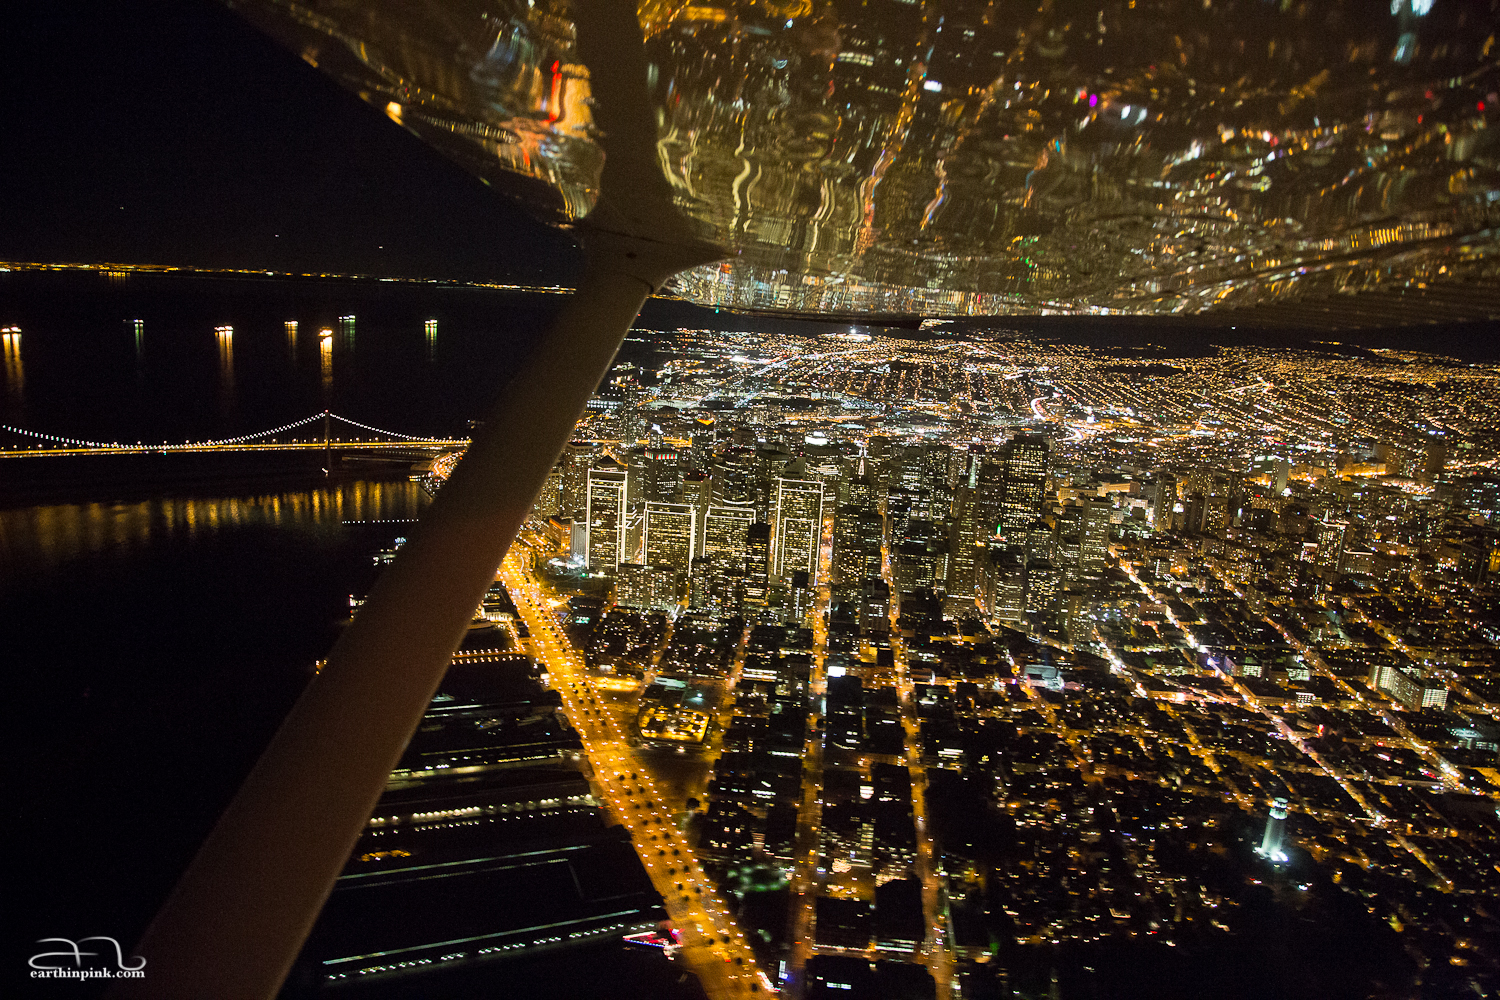 Night flying over San Francisco in a small Cessna plane, whose wing is reflecting the city lights below.